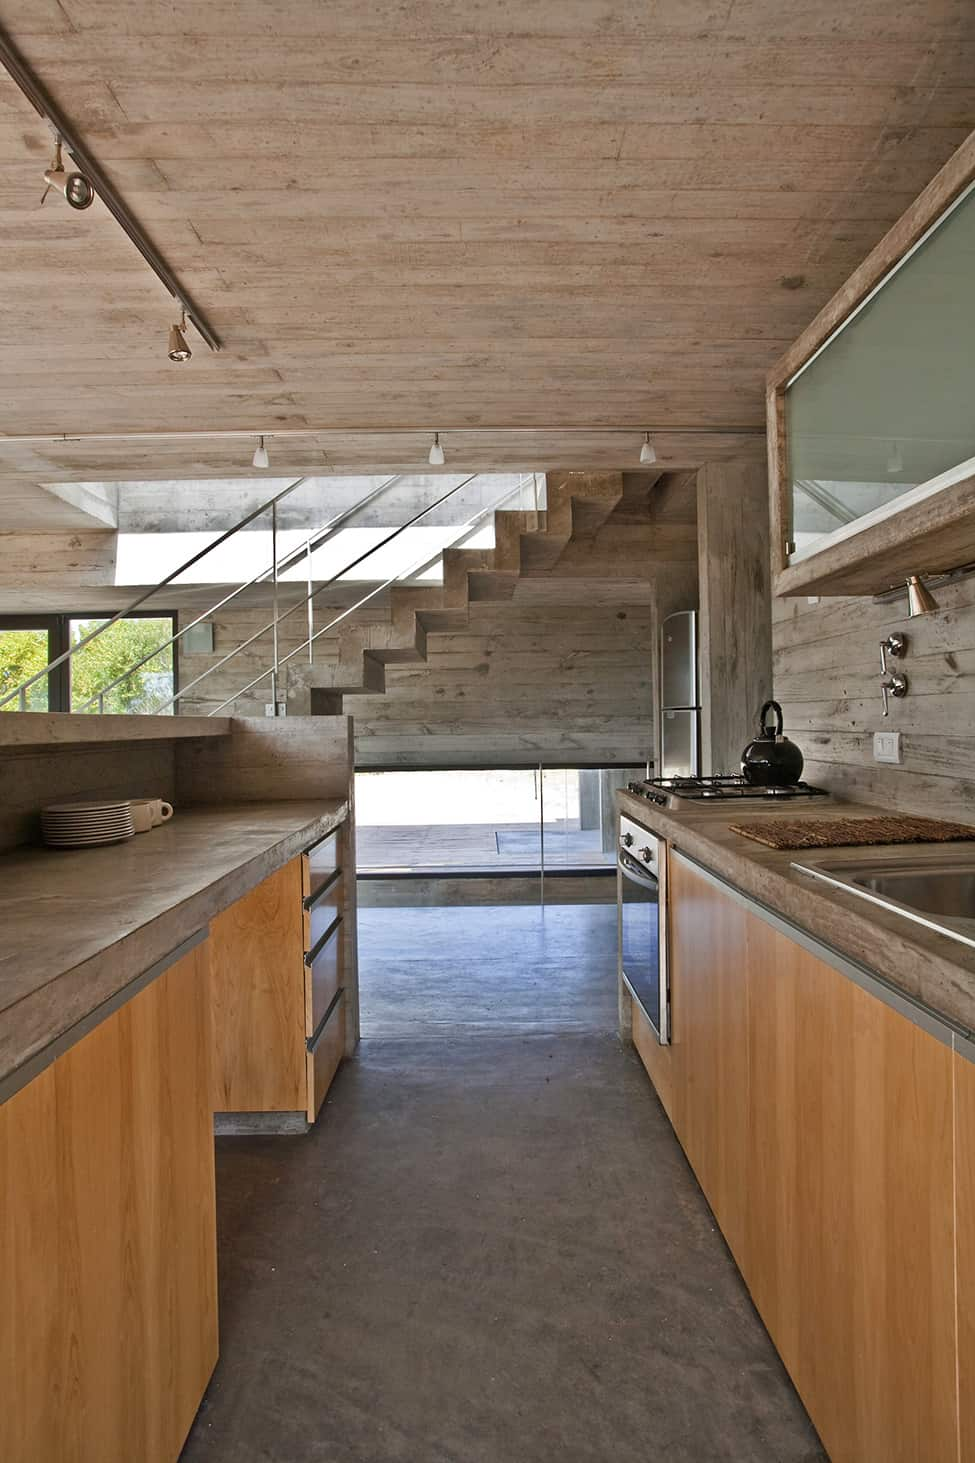 Industrial Aesthetic Values in a Beach Home by BAK Architects (19)